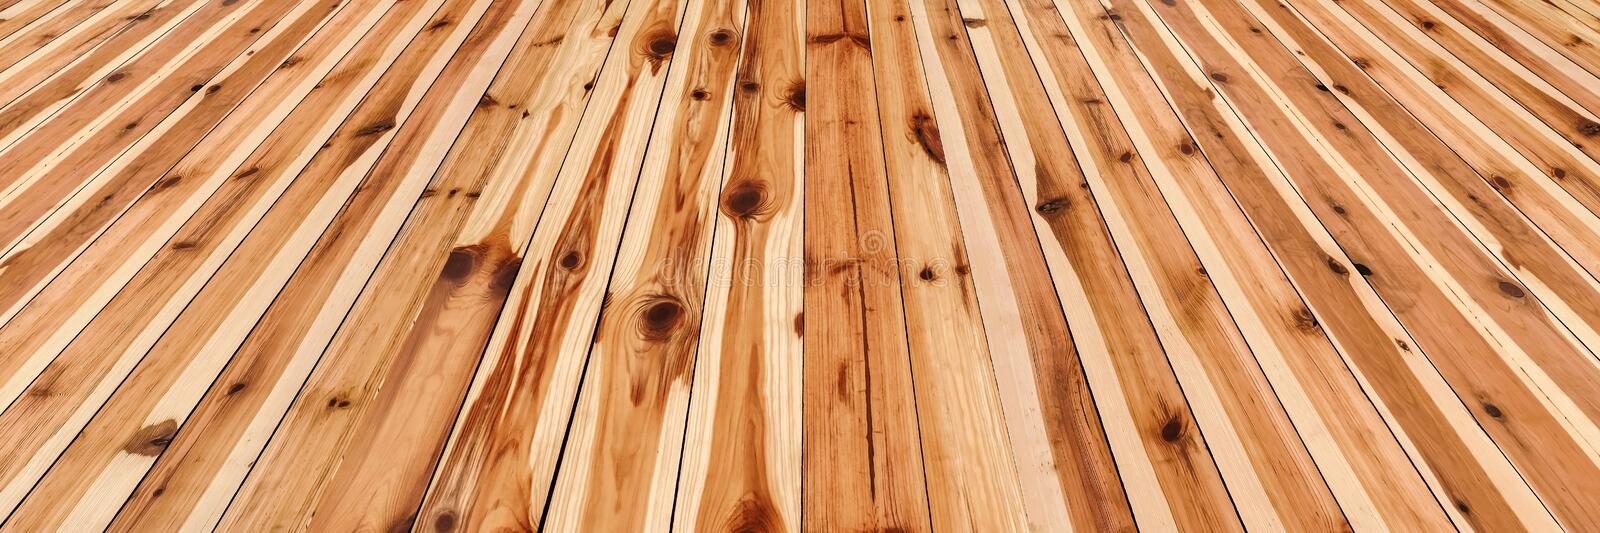 High Resolution Rustic Knotted Pinewood Floorboards Background royalty free stock images